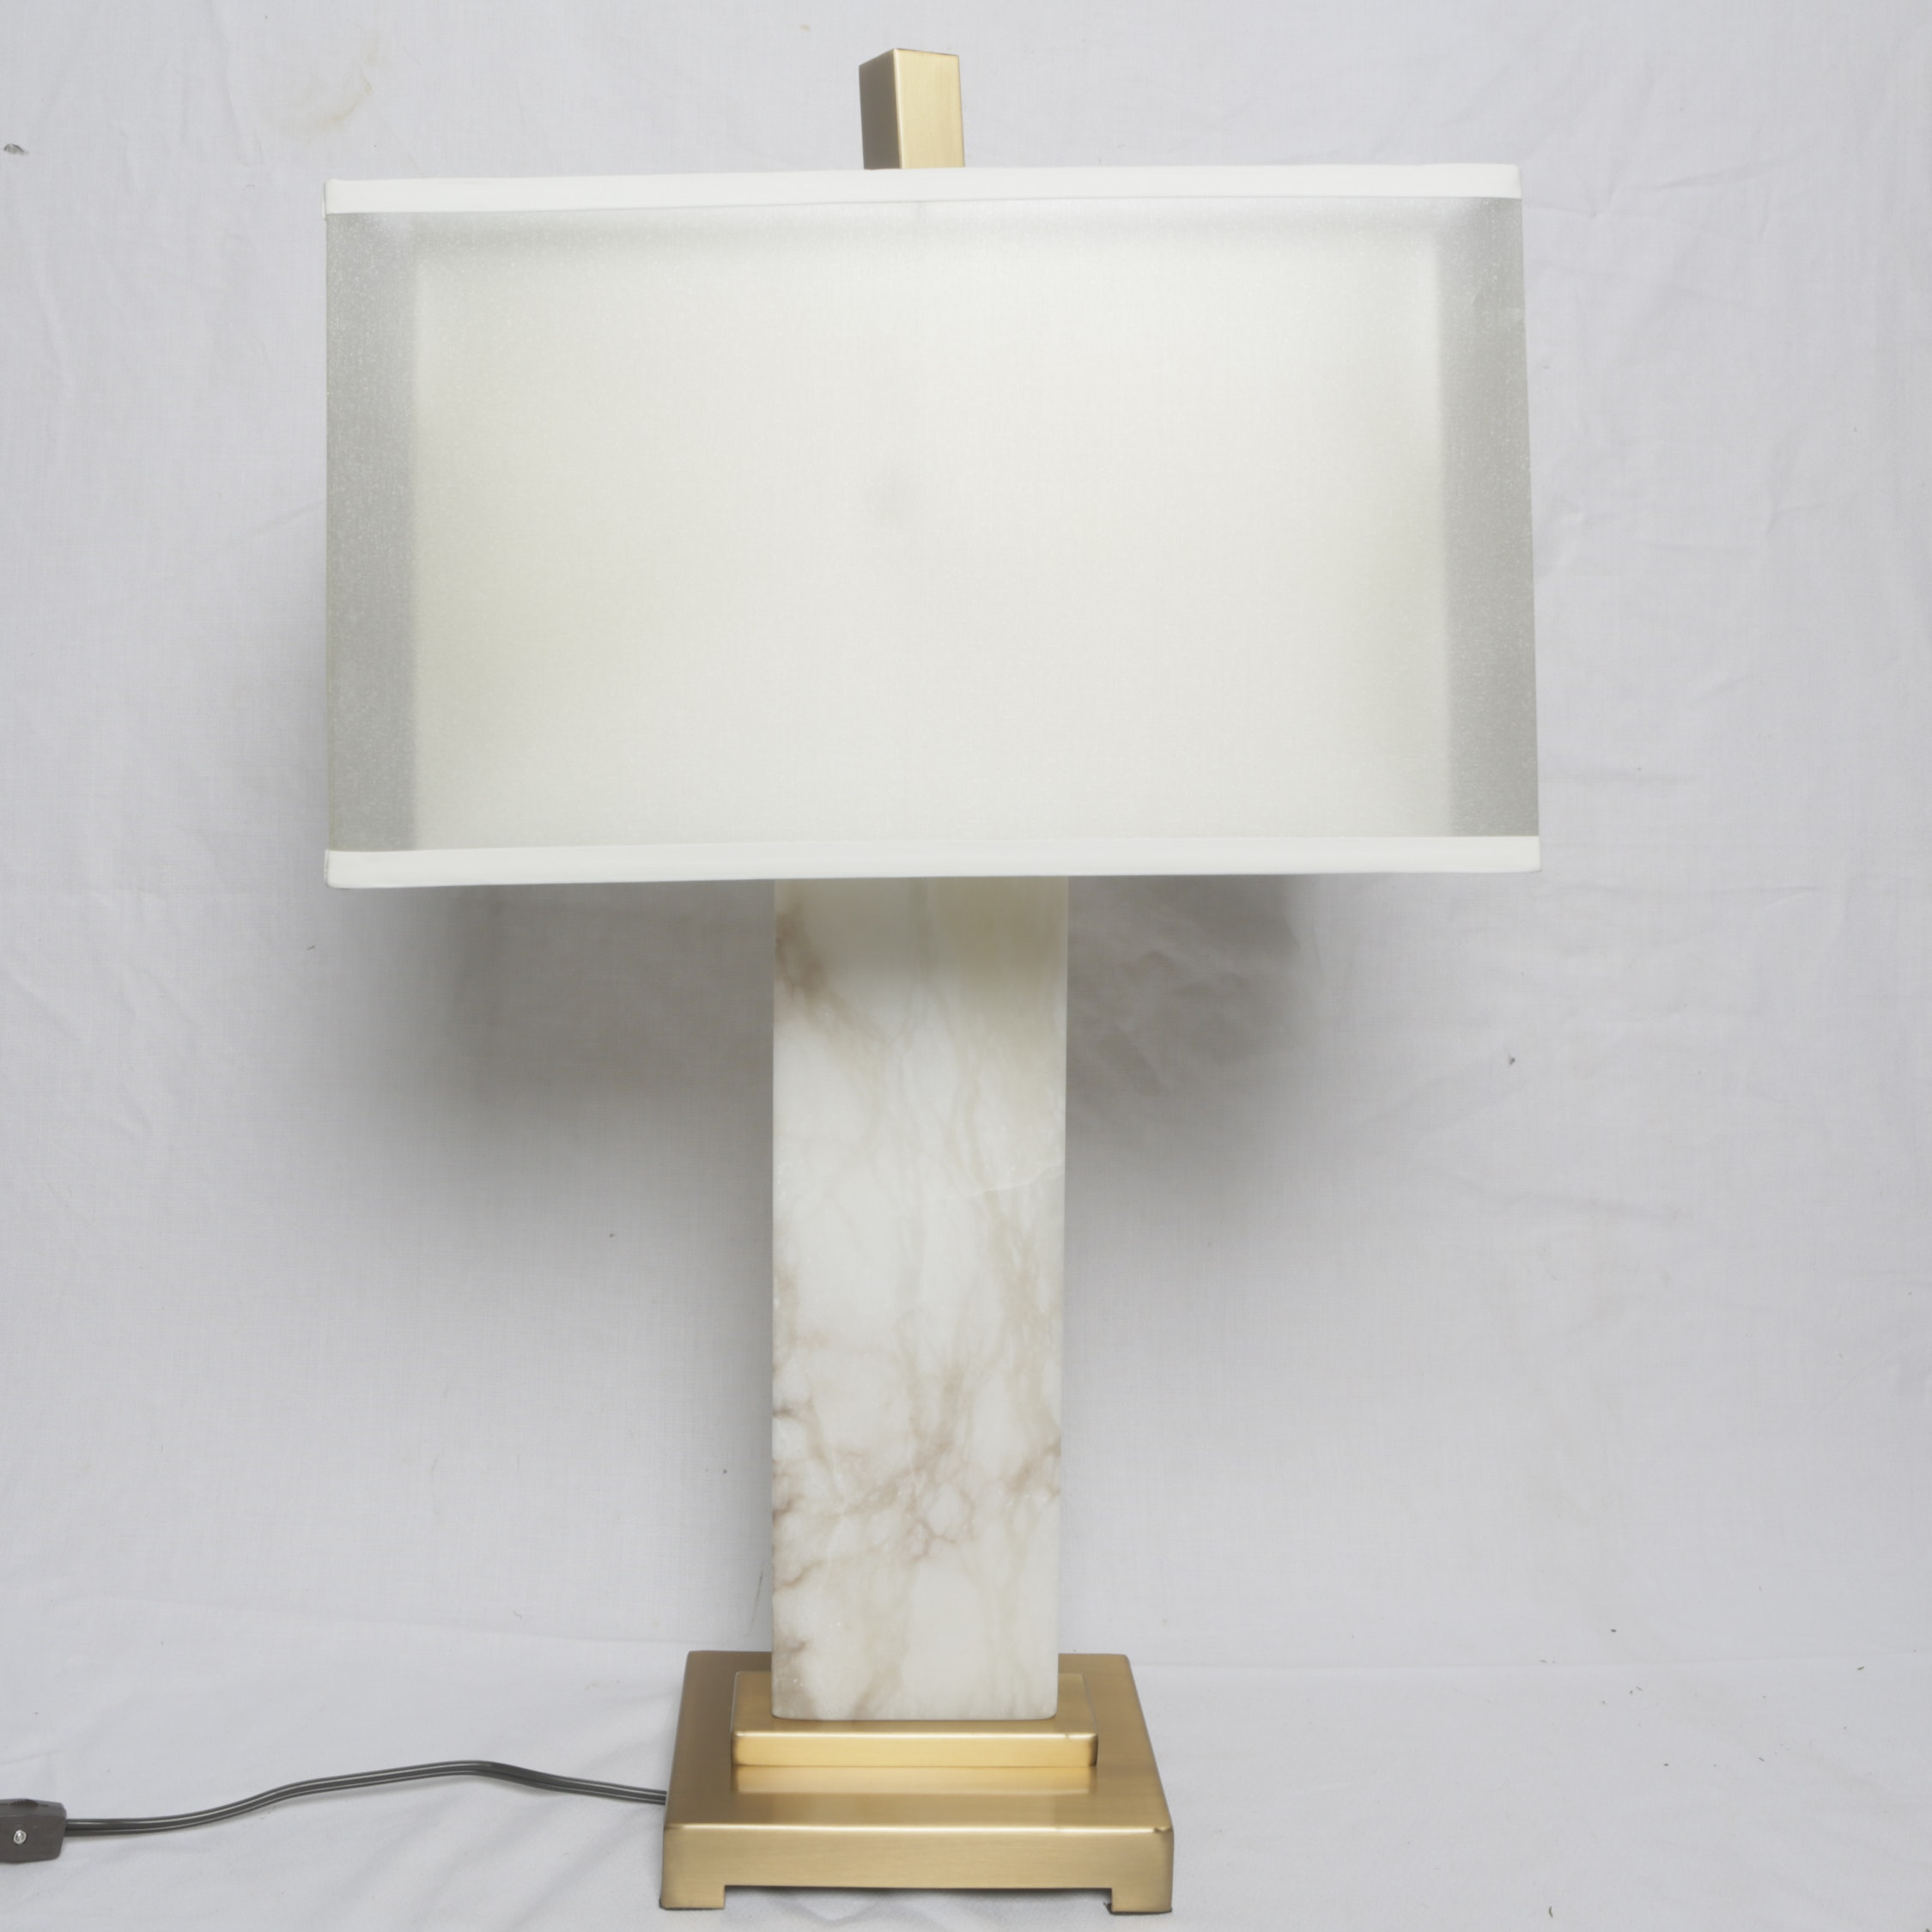 Contemporary Columnar Table Lamp with Gold Tone Finial and Base including Shade